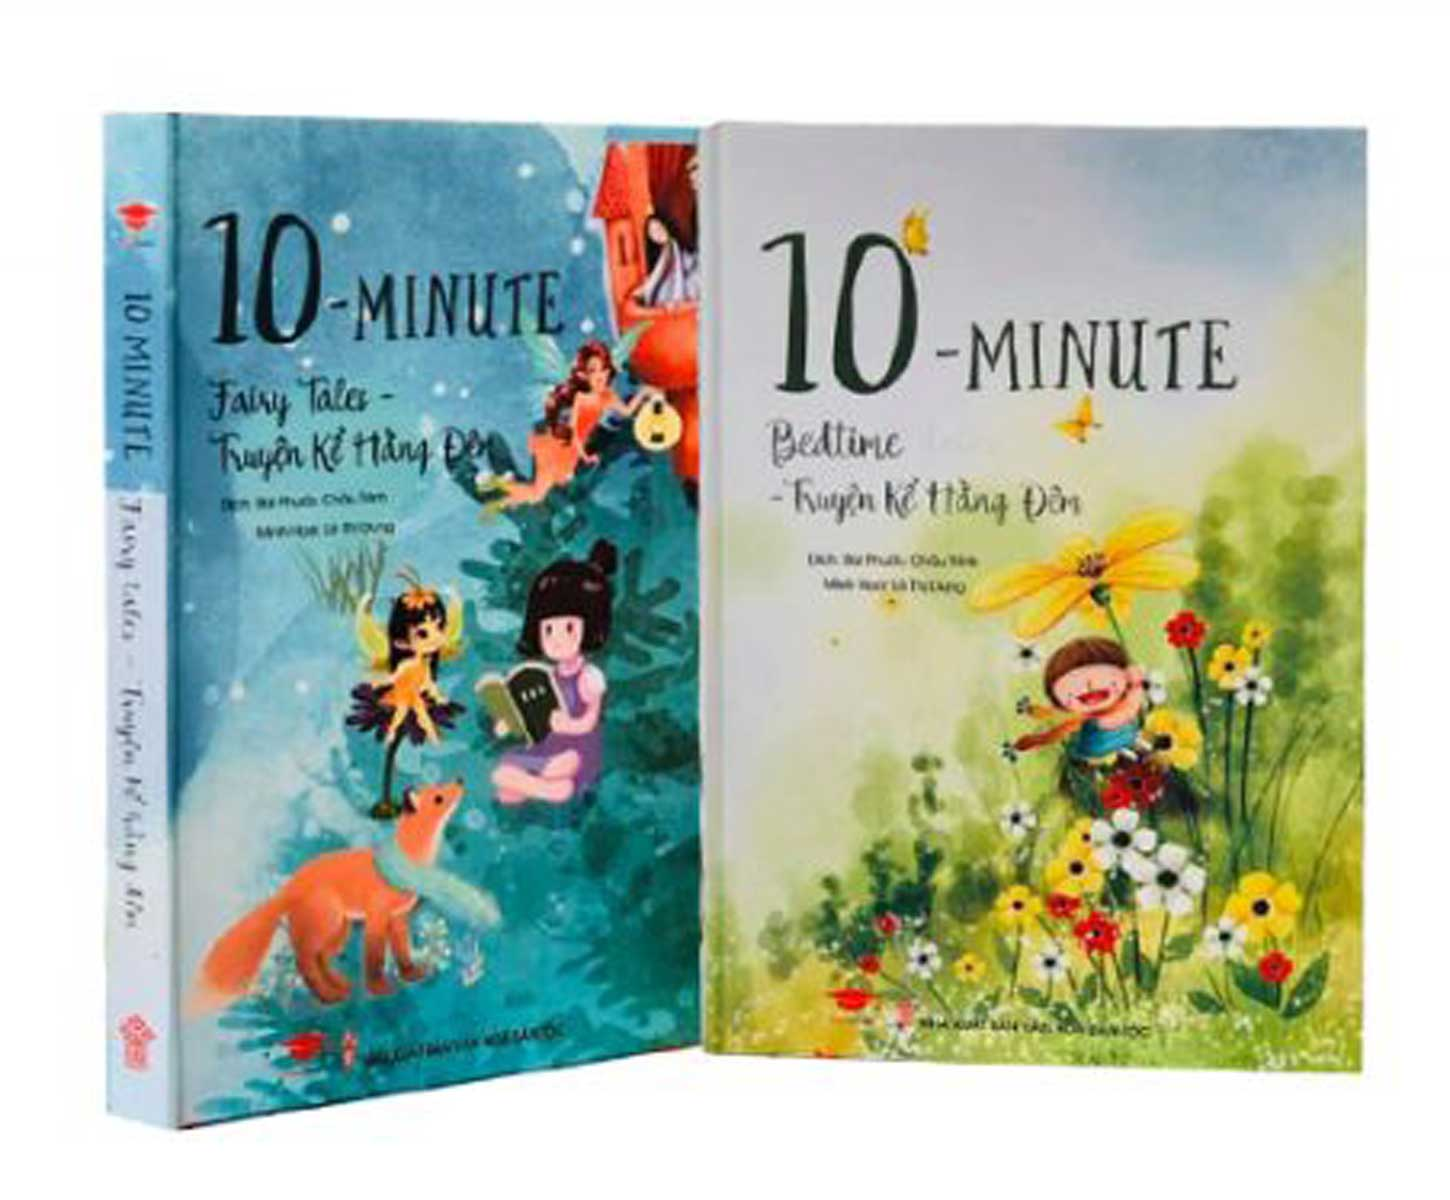 Combo Truyện Song Ngữ - Truyện Kể Hằng Đêm: 10 Minute Fairy Tales + 10 Minute Bedtime Stories